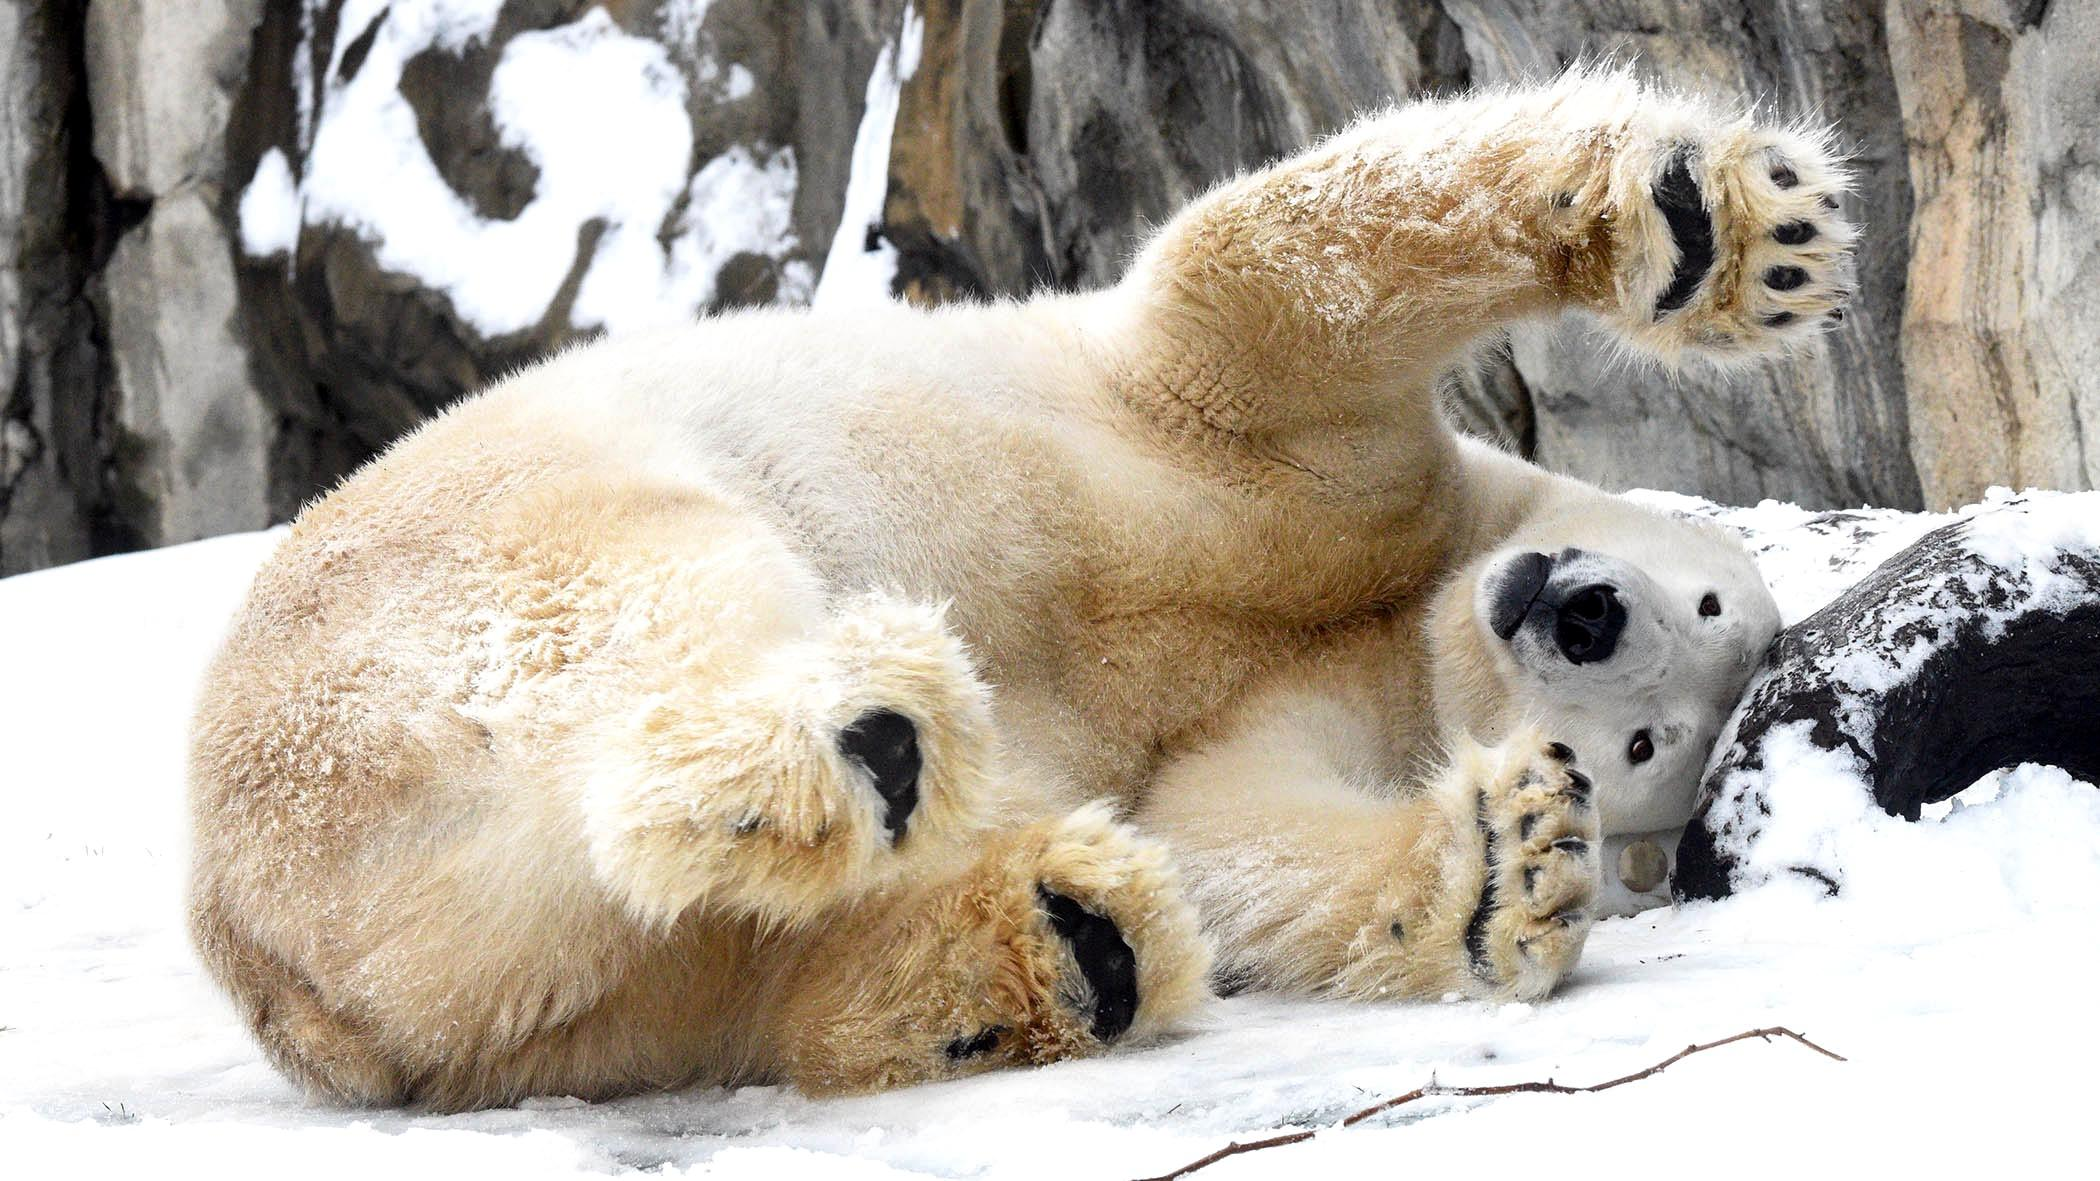 Hudson, Brookfield Zoo's 14-year-old polar bear, frolics in the snow. (Jim Schulz / Chicago Zoological Society)